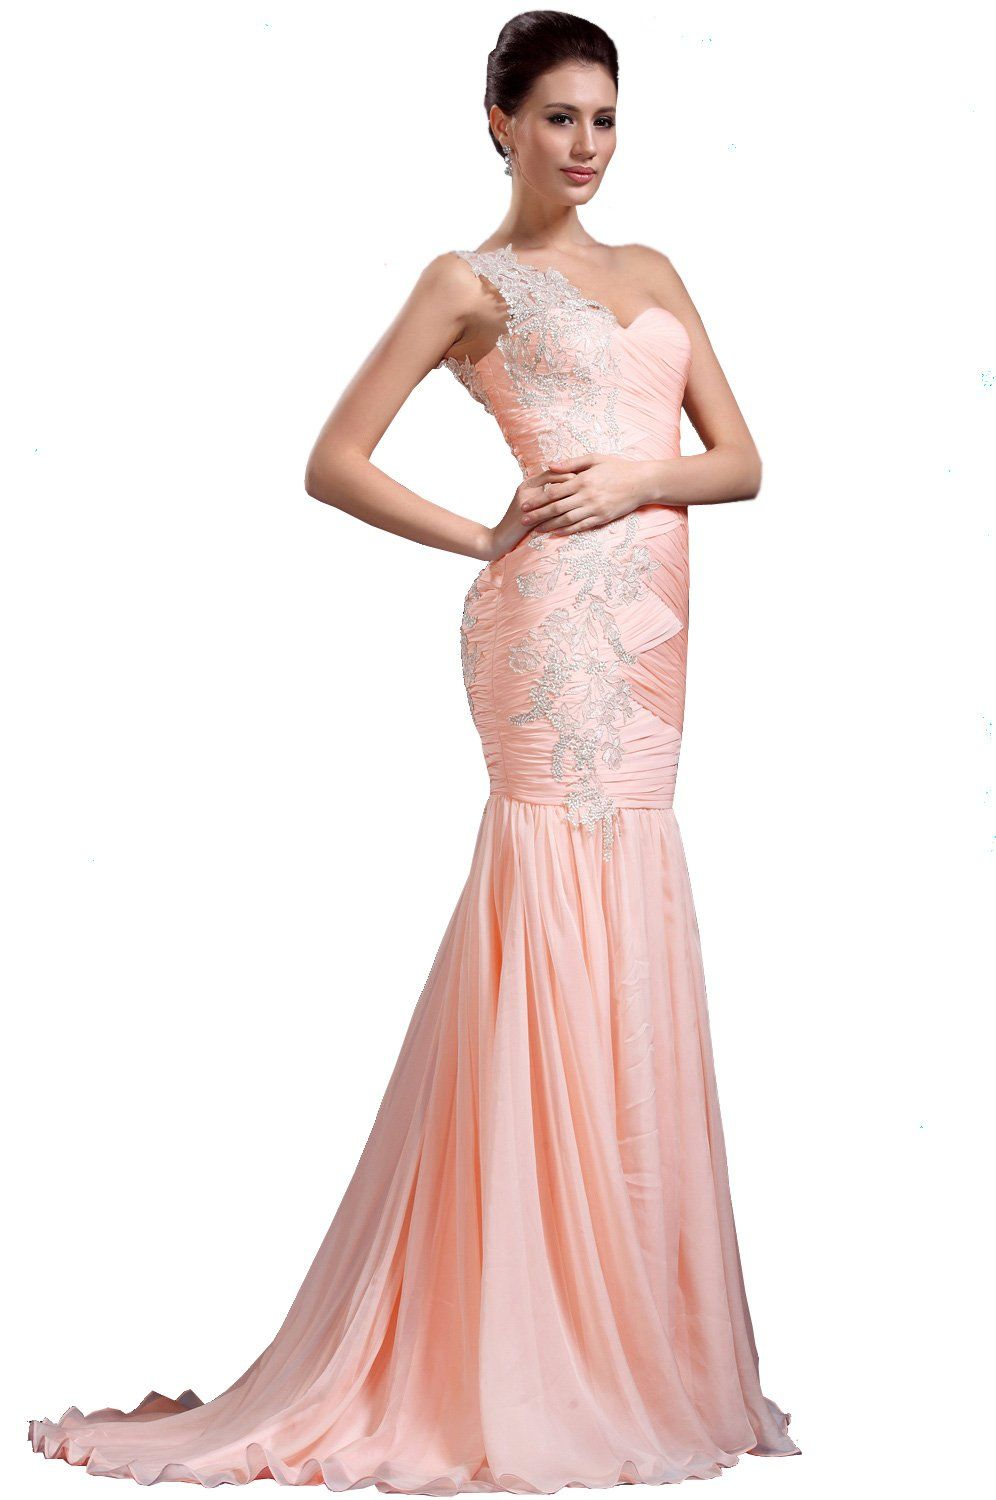 Edressit new pink lace straps evening dress prom ball gown